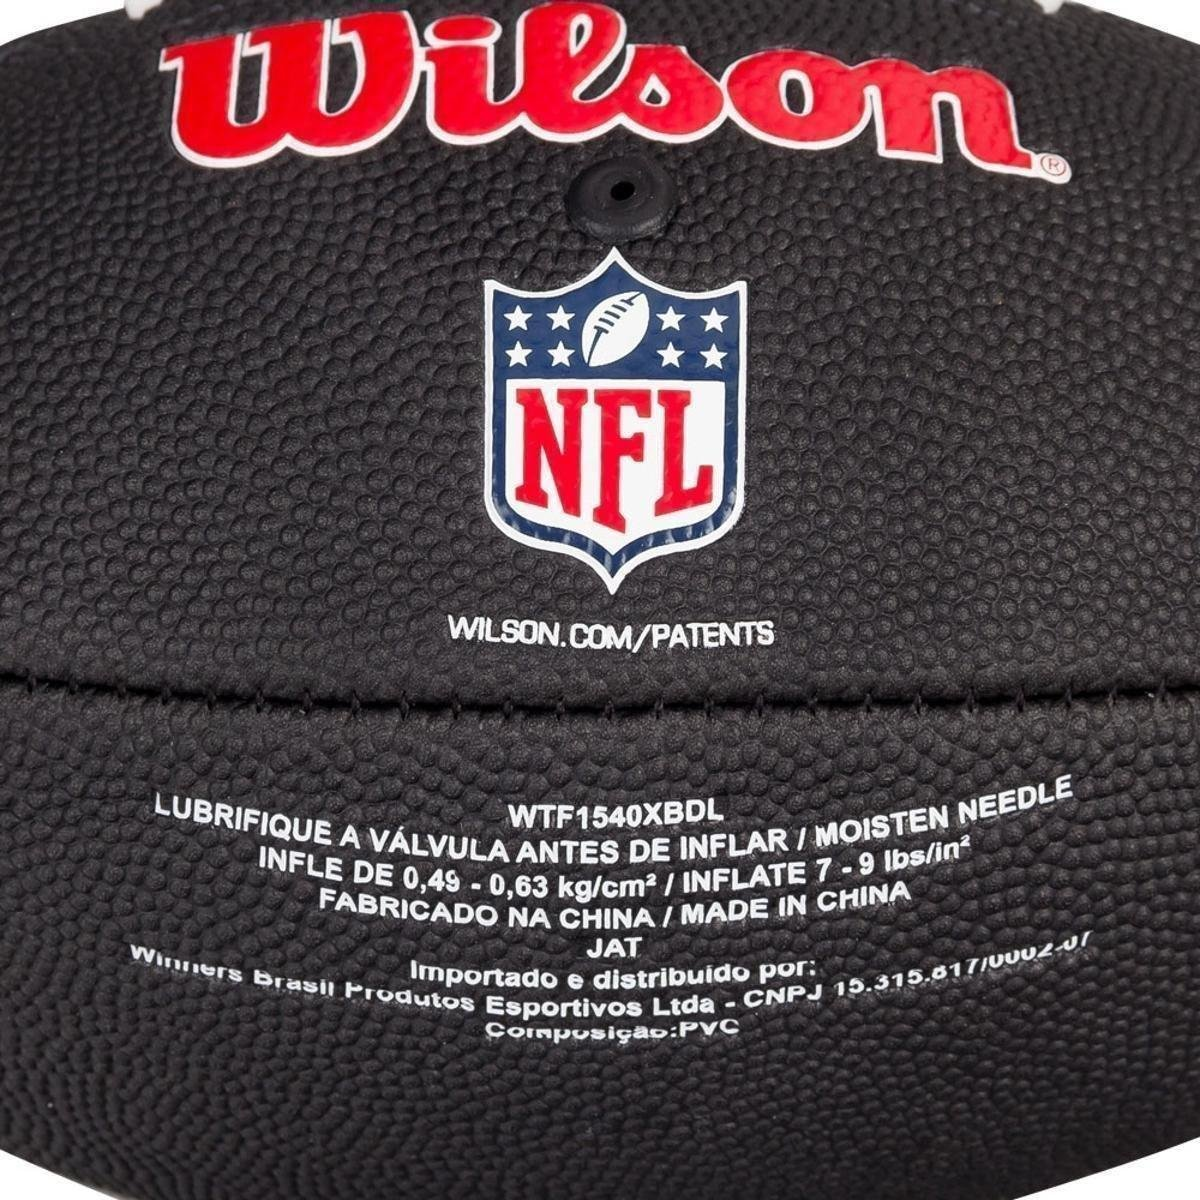 ... Bola de Futebol Americano Wilson NFL Team Jr Dallas Cowboys Edition  Black 3acbfb89771